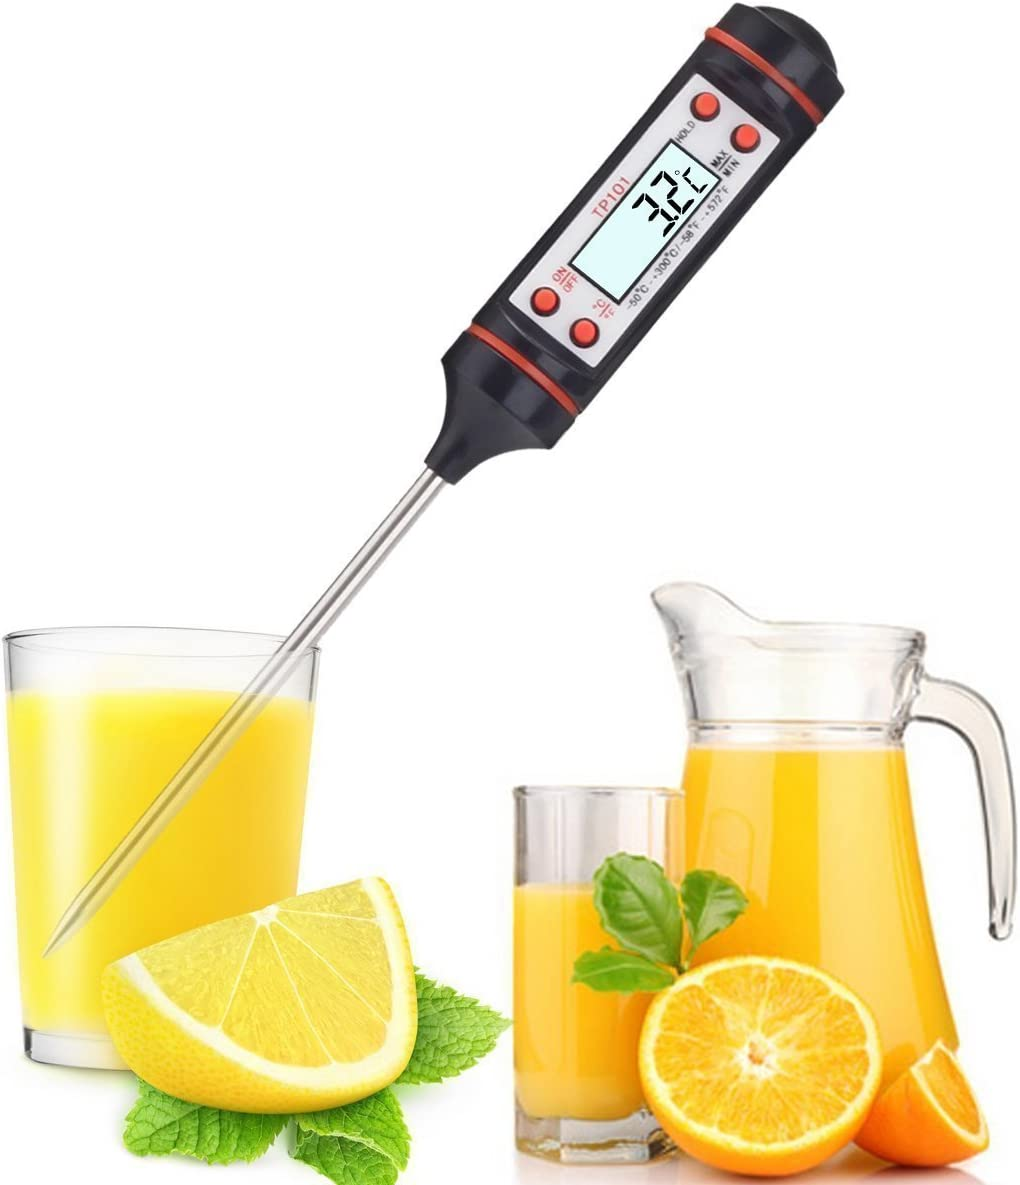 Digital Cooking Thermometer by Sterling Knights Best Wireless Electronic Food Thermometer Probe For Meat,Candy,BBQ and Grill